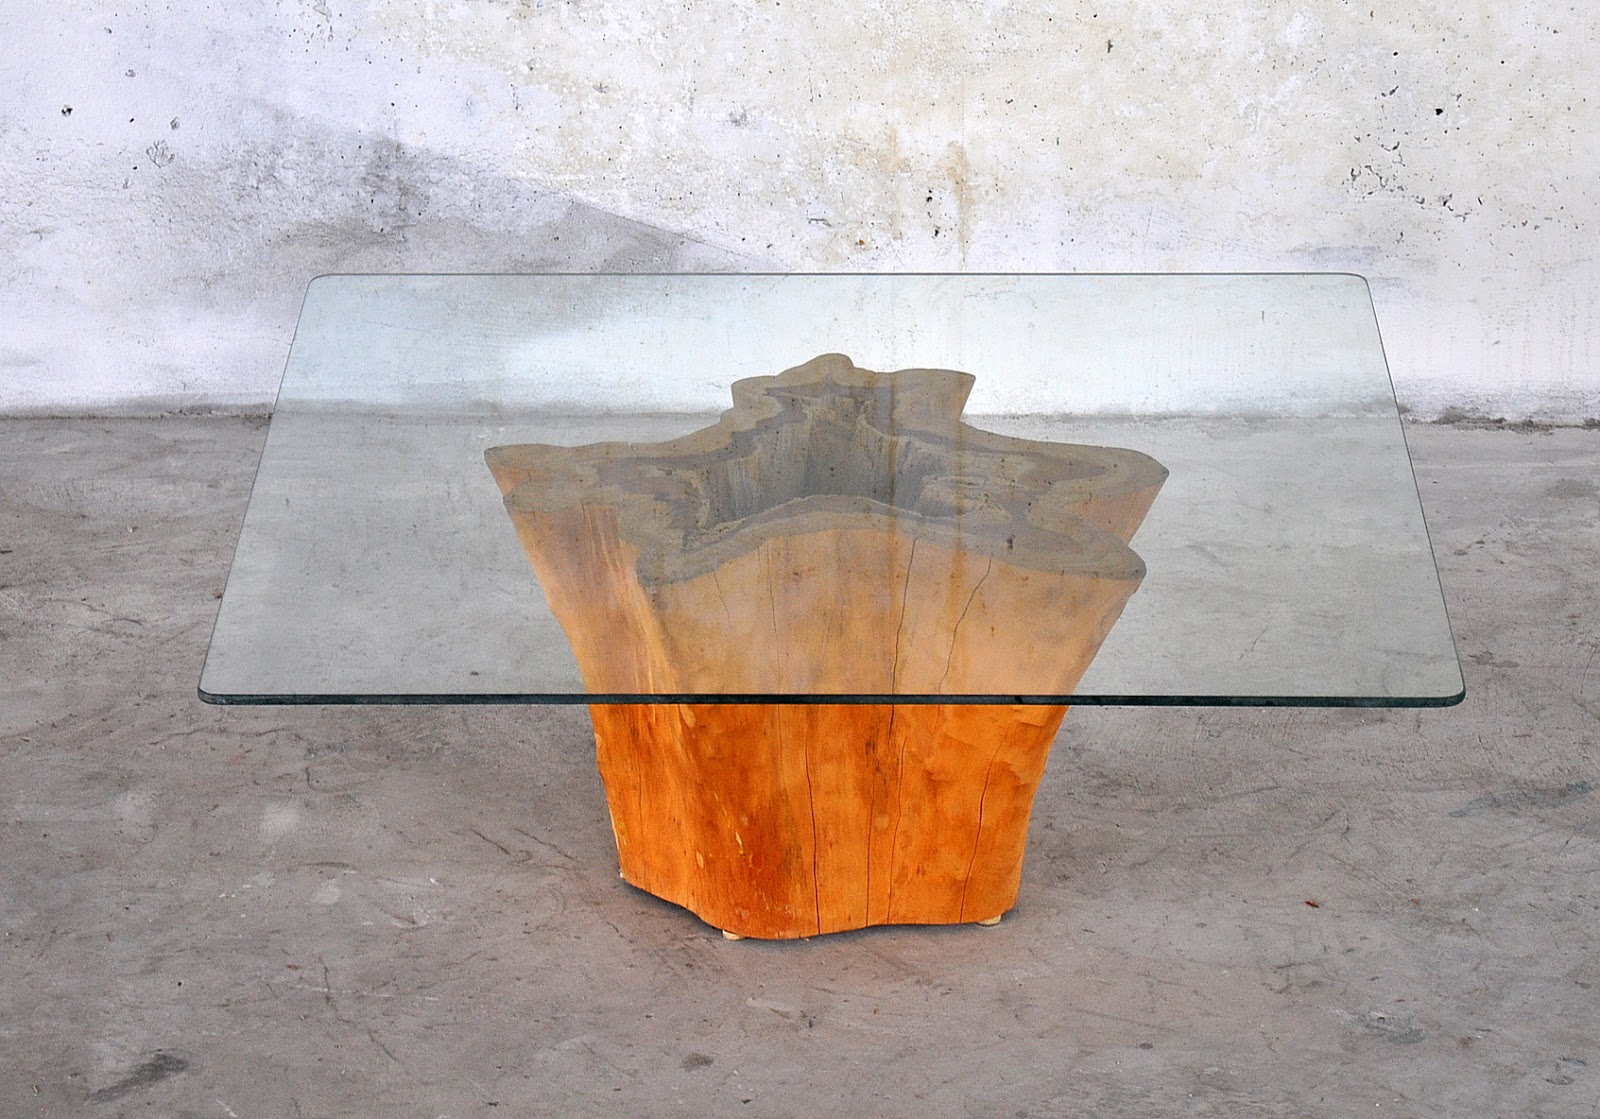 ... tree stump glass coffee table 5 jpg click for details tree stump